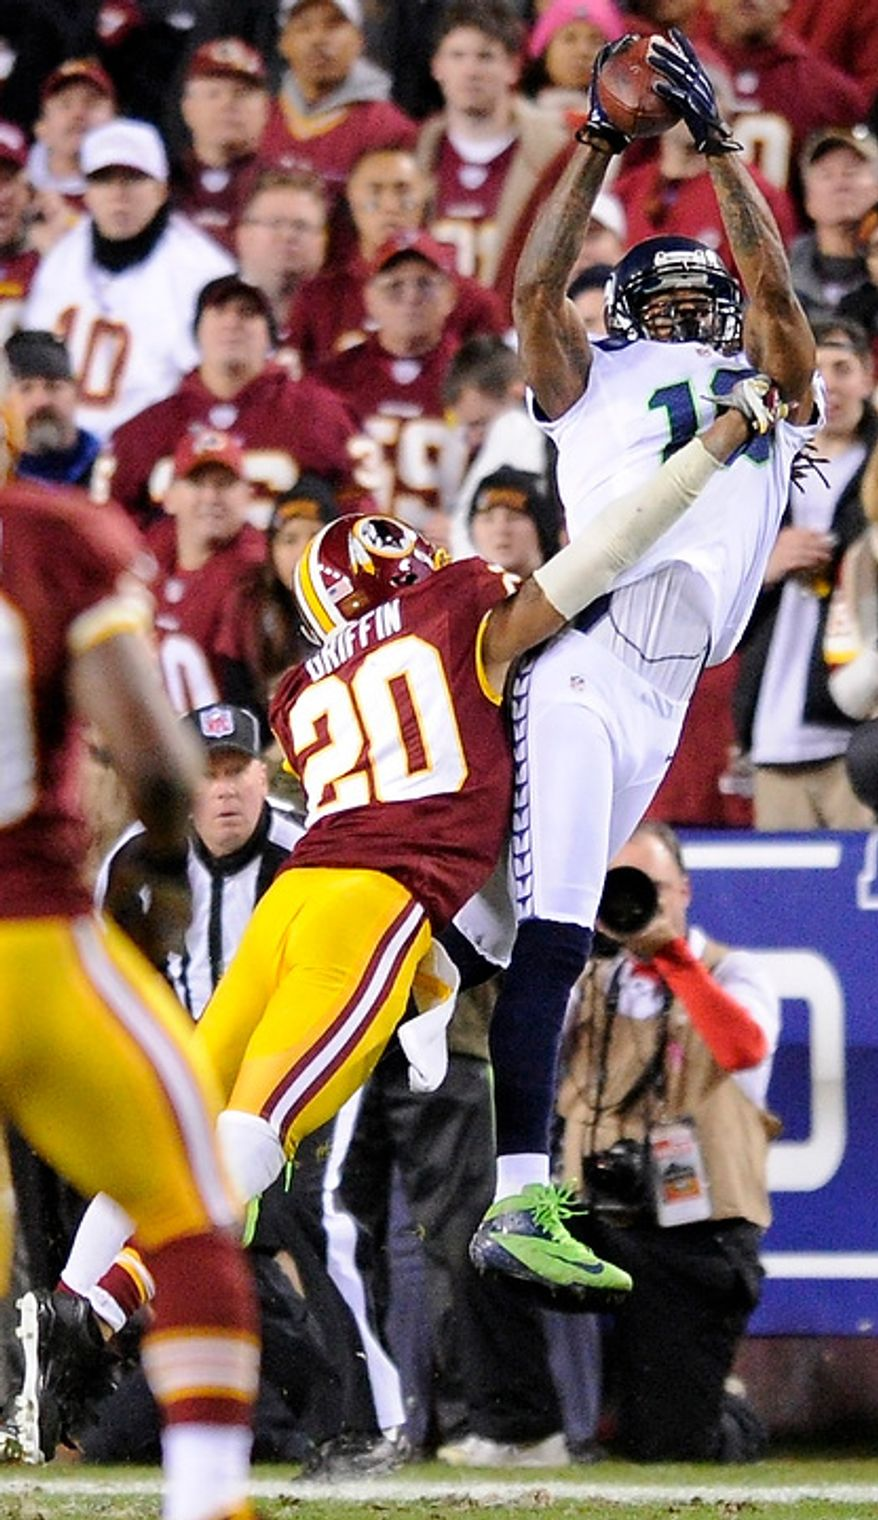 Seattle Seahawks wide receiver Sidney Rice (18) hauls in a first down reception over Washington Redskins strong safety Cedric Griffin (20) in the second quarter of the NFC wild card game at FedEx Field, Landover, Md., Jan. 6, 2013. (Preston Keres/Special to The Washington Times)